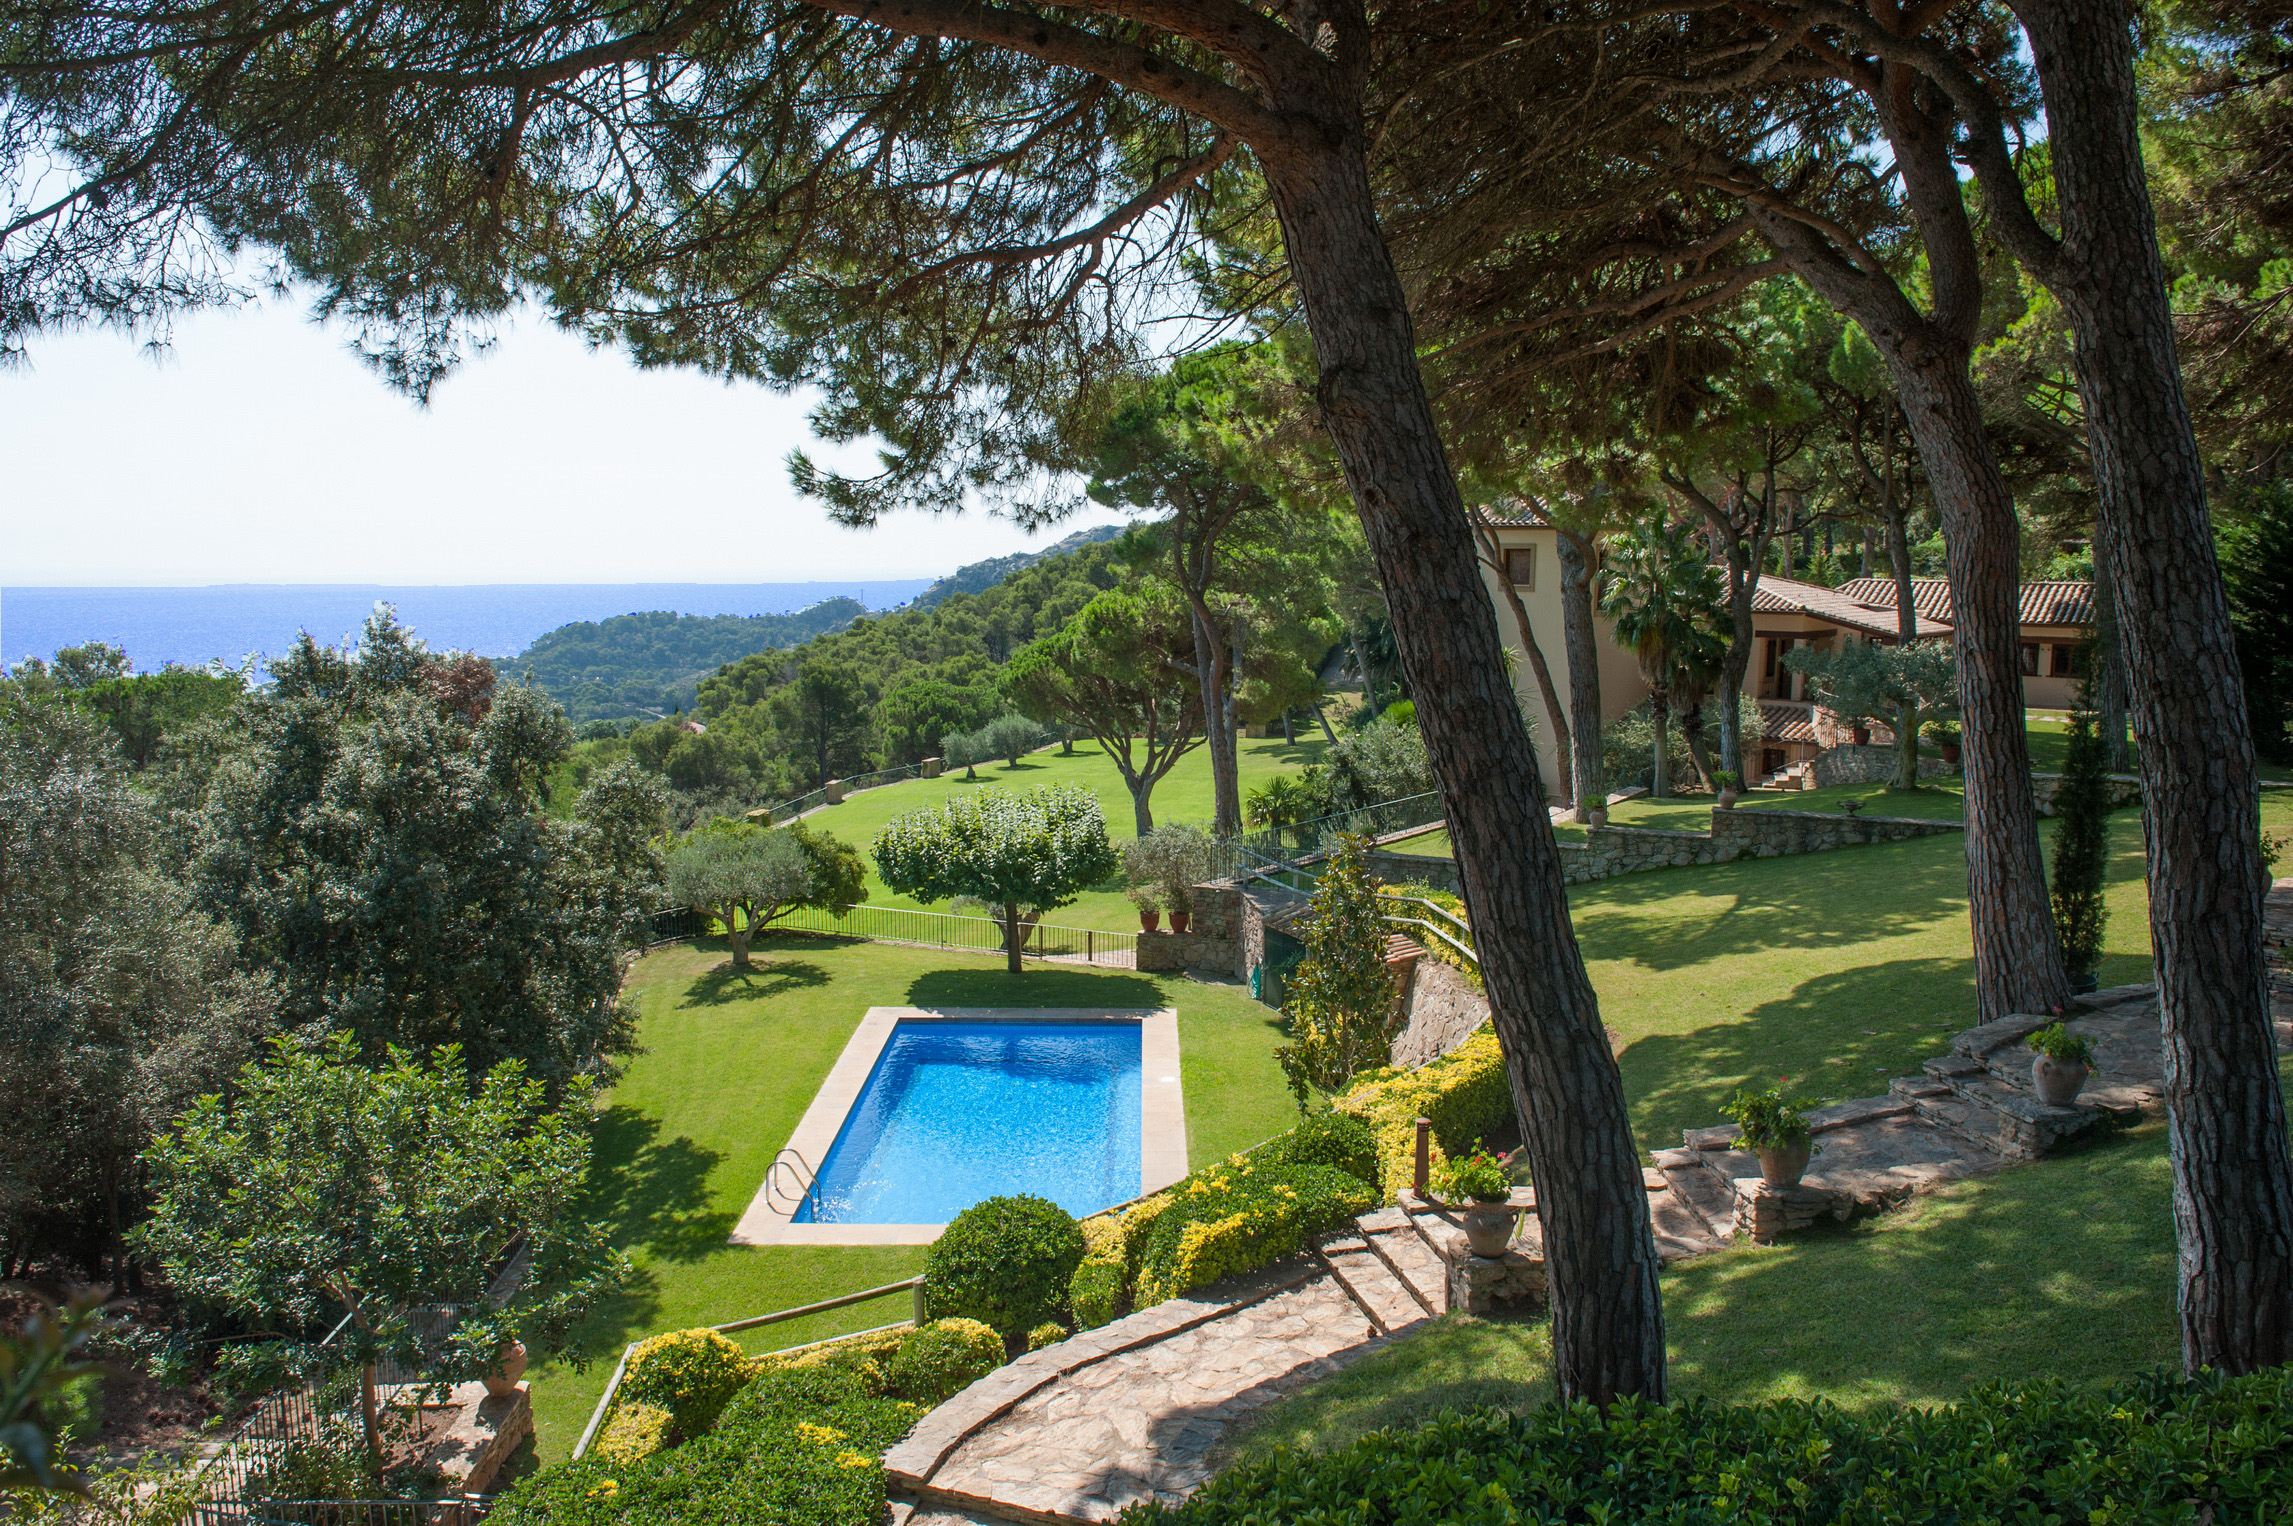 Single Family Home for Sale at Luxury property in Aiguablava with sea views Begur, Costa Brava 17255 Spain